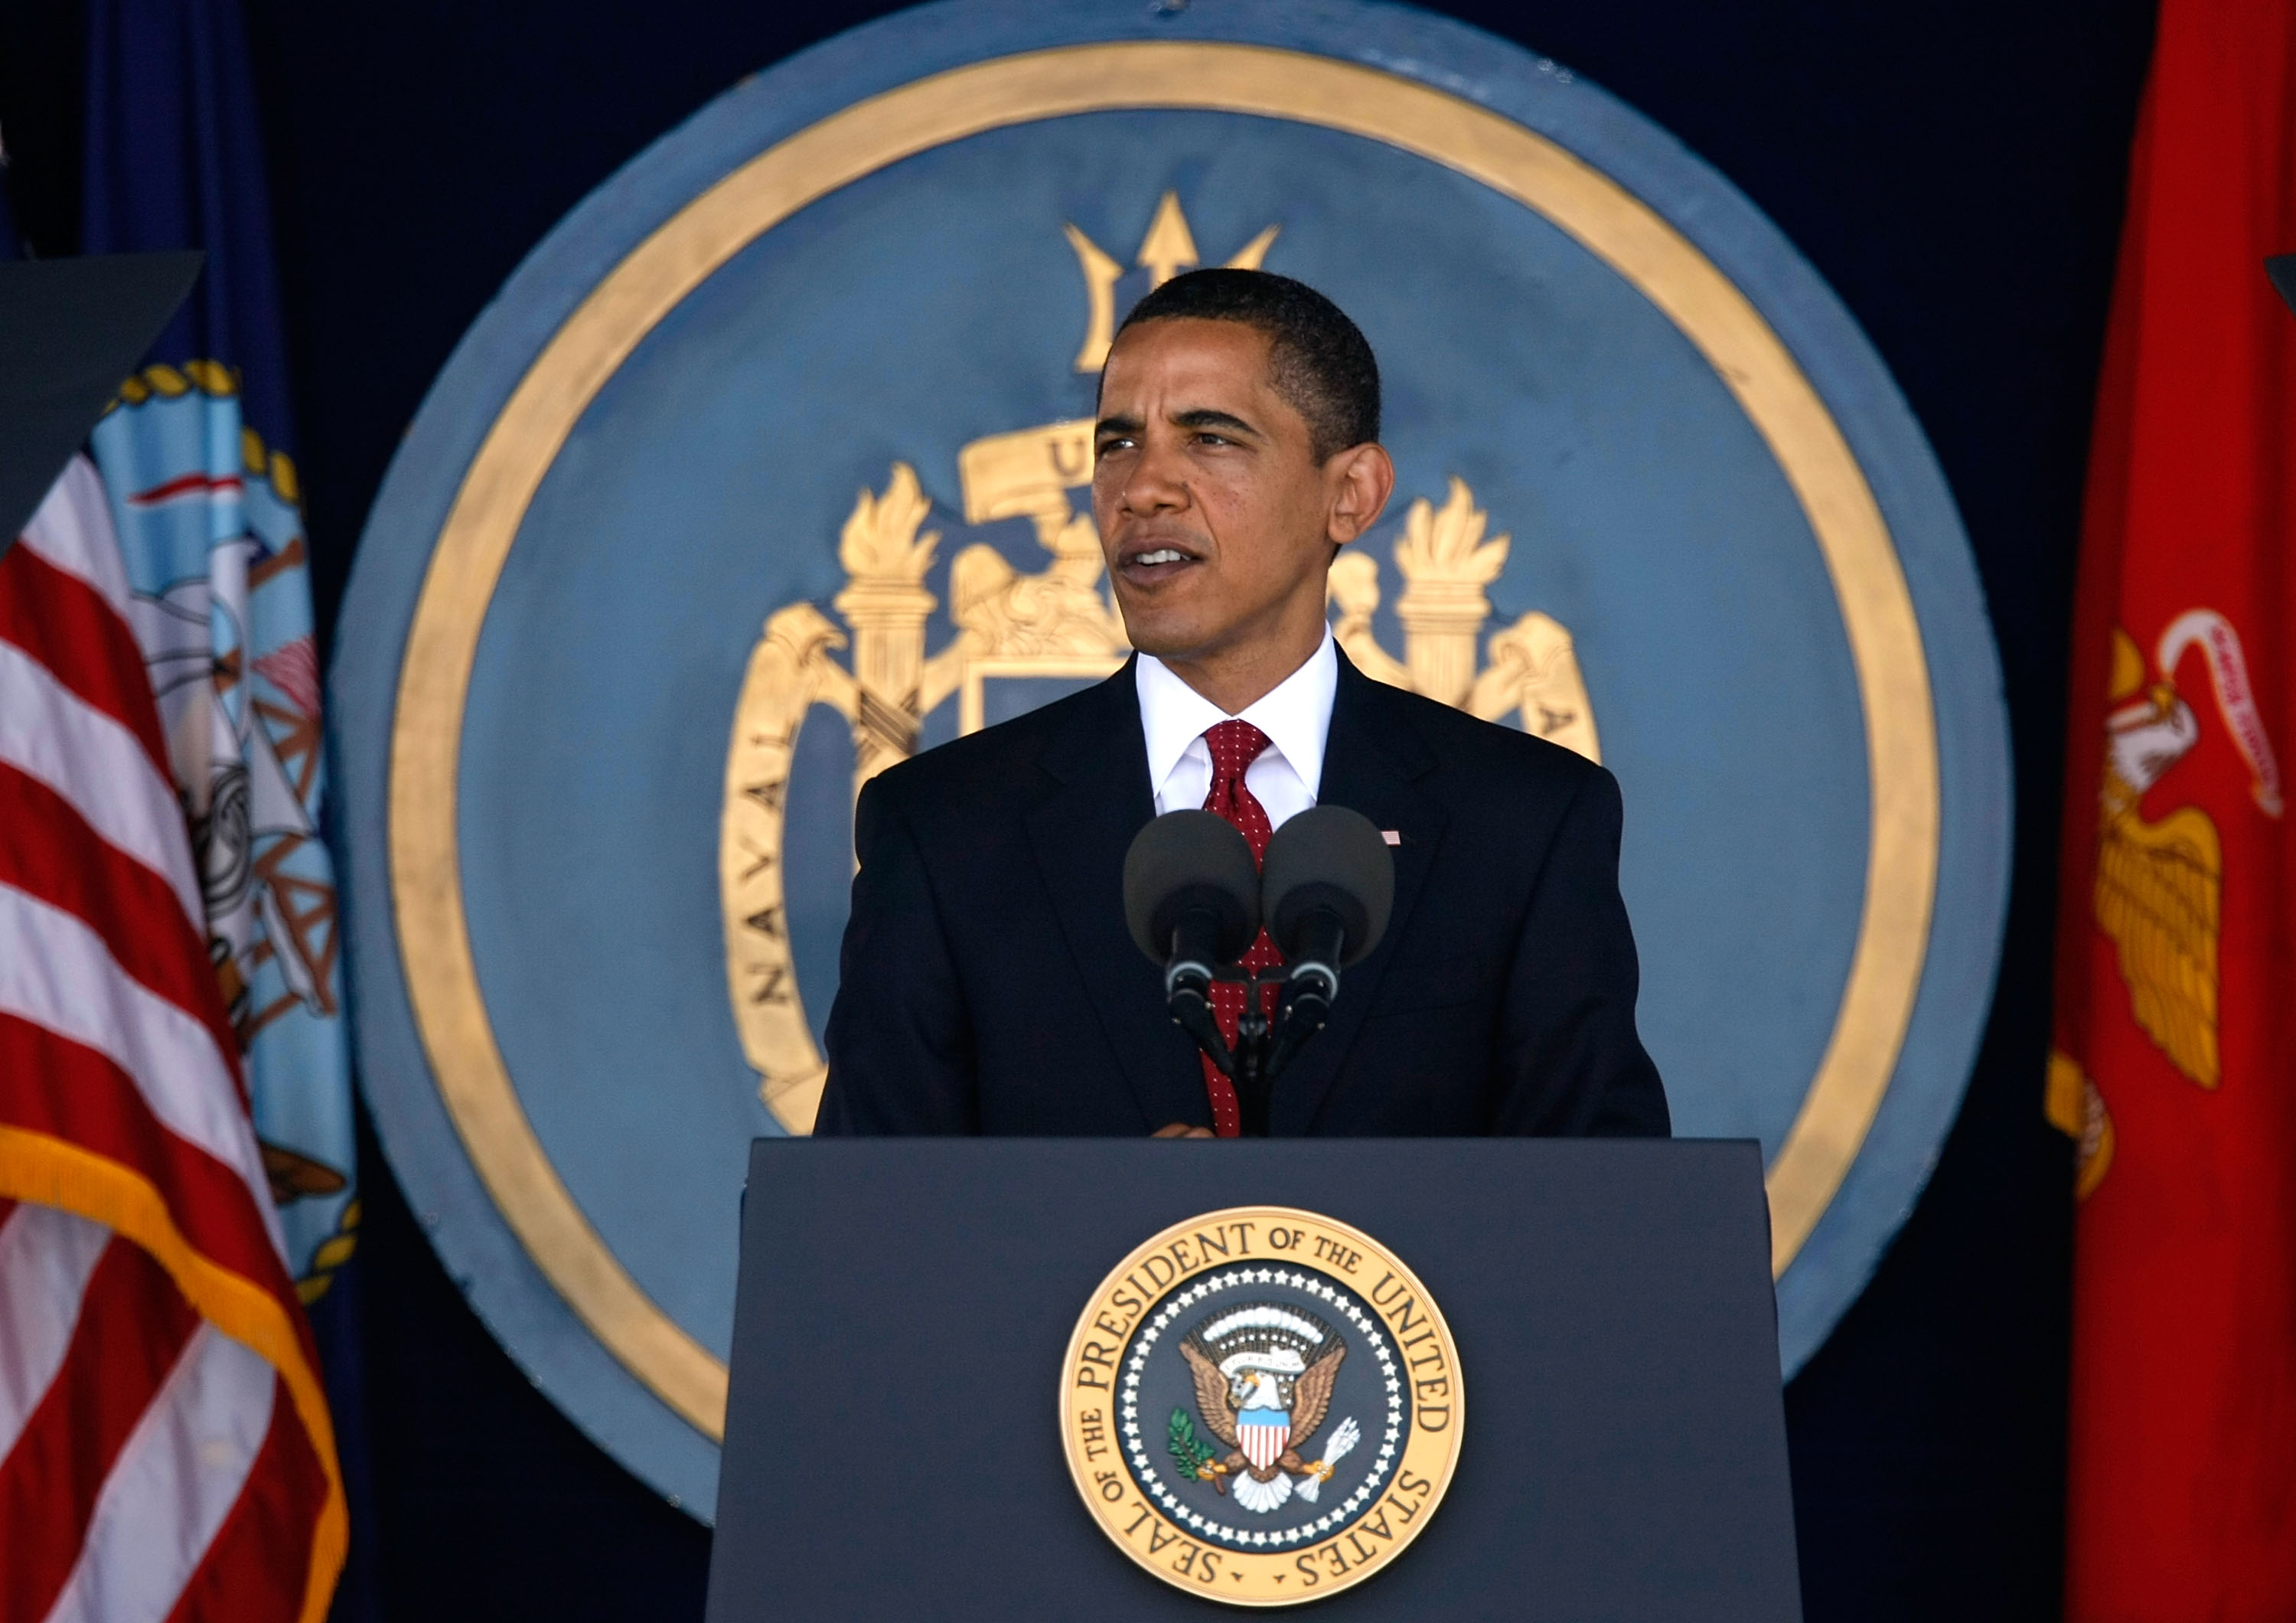 U.S. President Barack Obama speaks during the annual Naval Academy Graduation and Commissioning Ceremony at the Navy-Marine Corps Memorial Stadium May 22, 2009 in Annapolis, Maryland. Obama delivered commencement address to the 1036 graduates of the class of 2009.